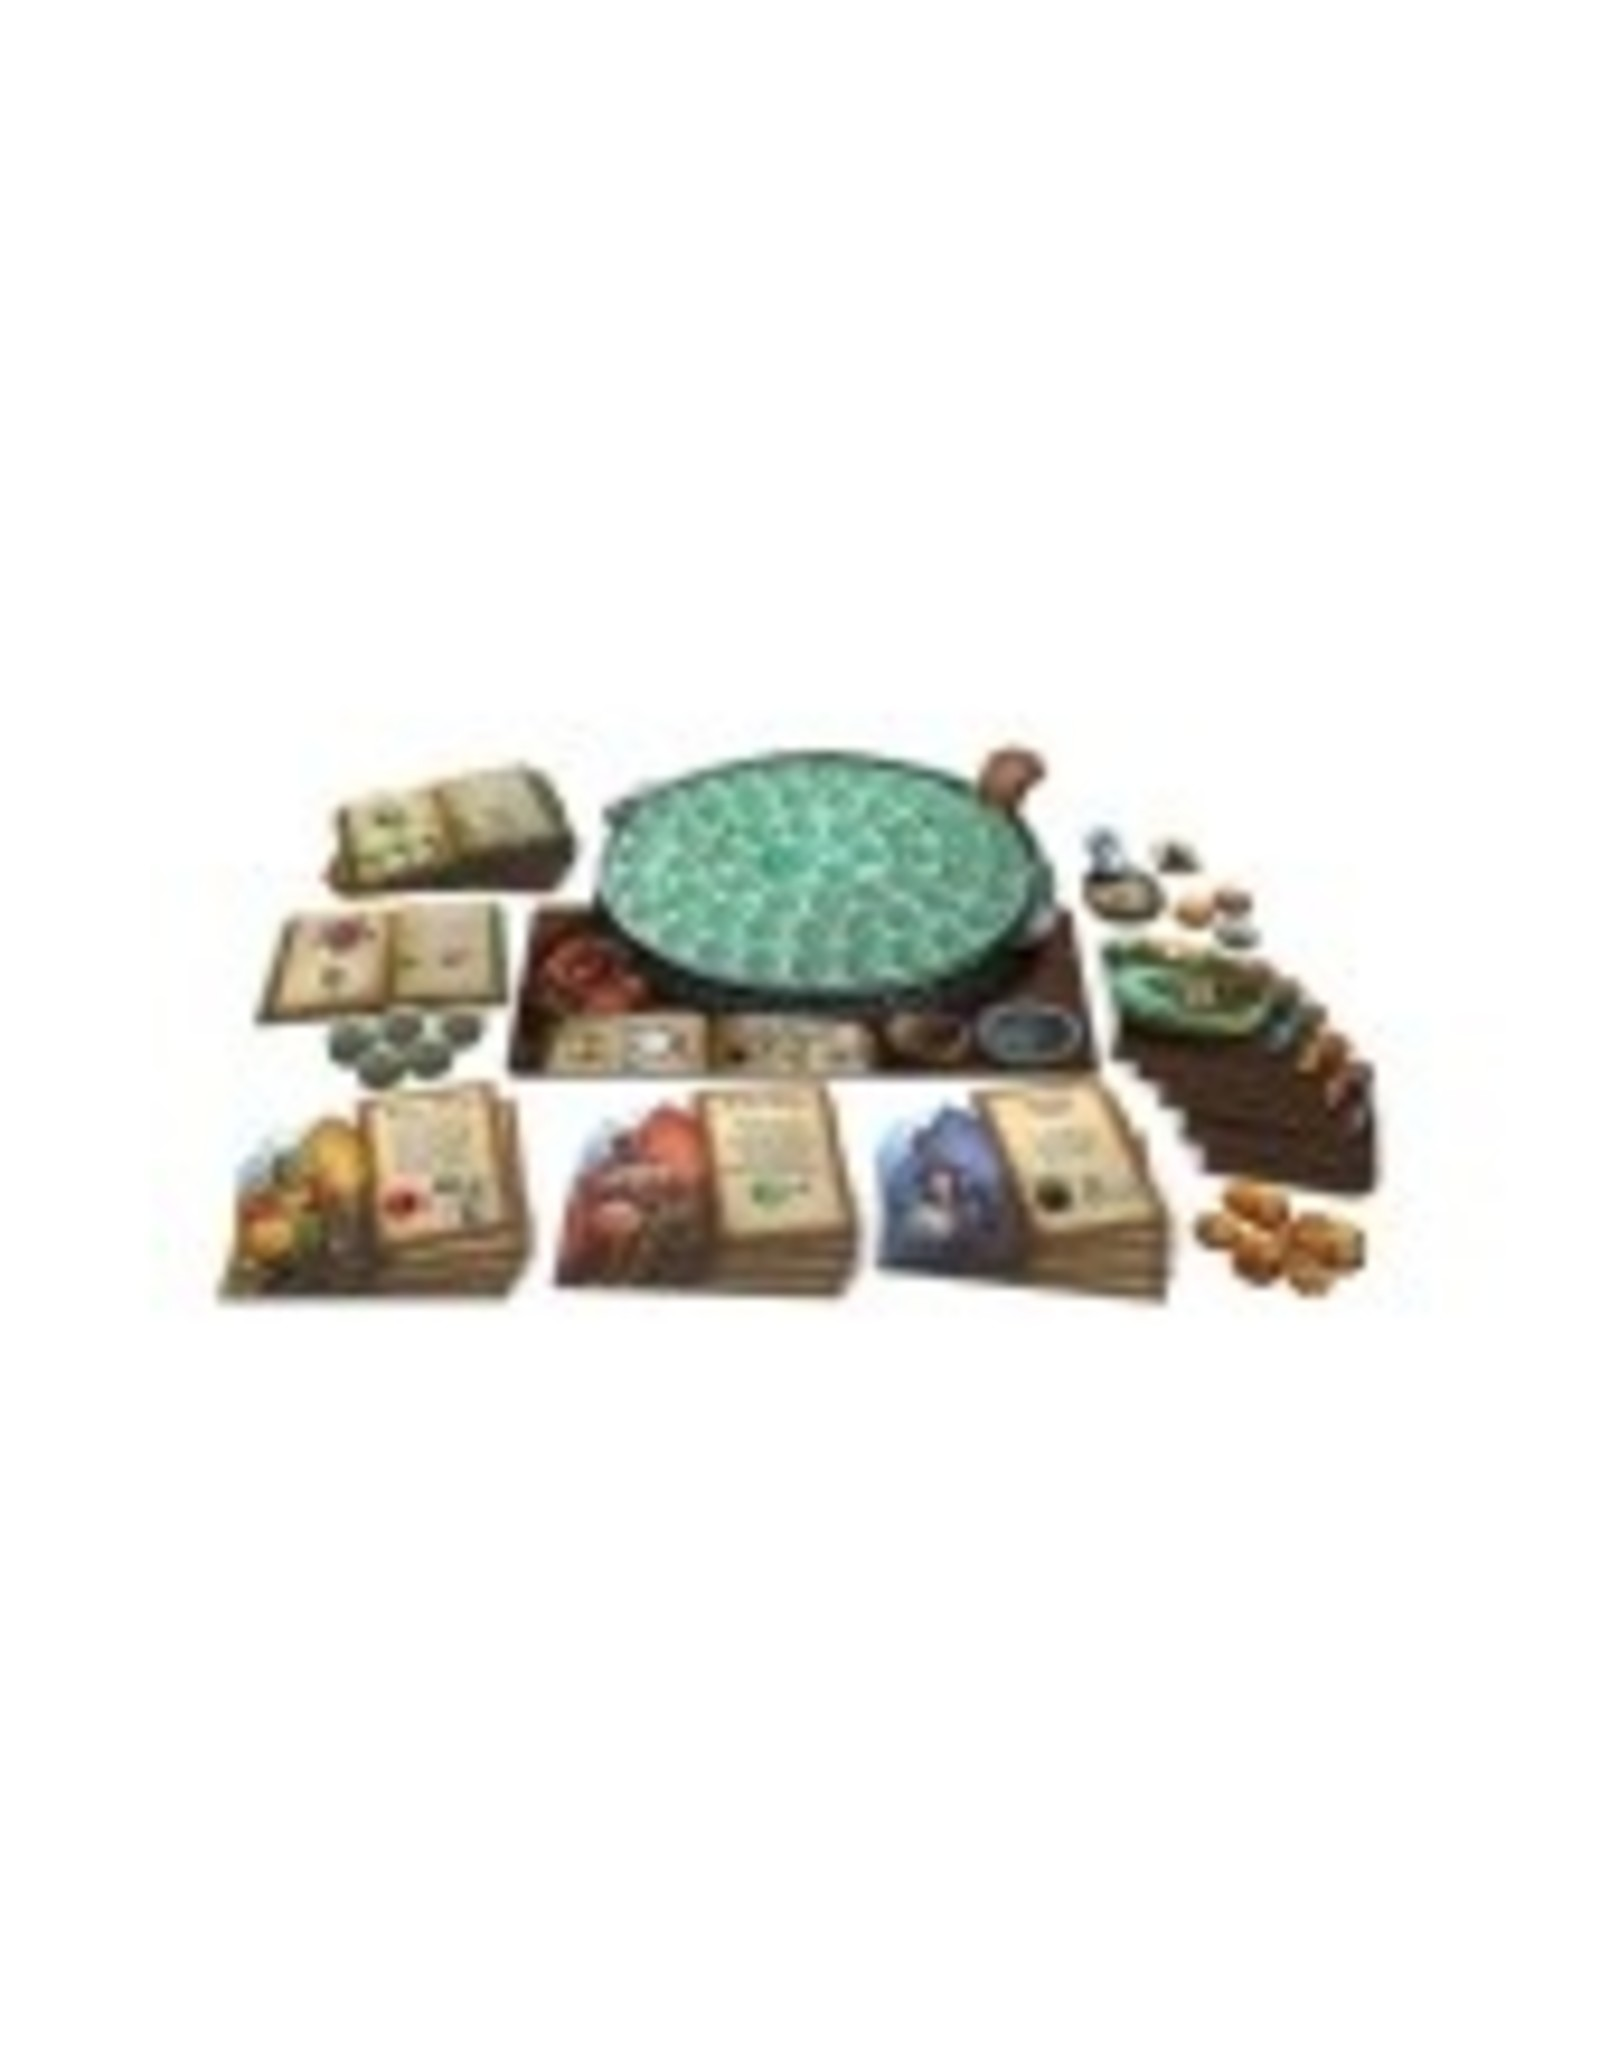 North Star Games The Quacks of Quedlinburg: The Herb Witches